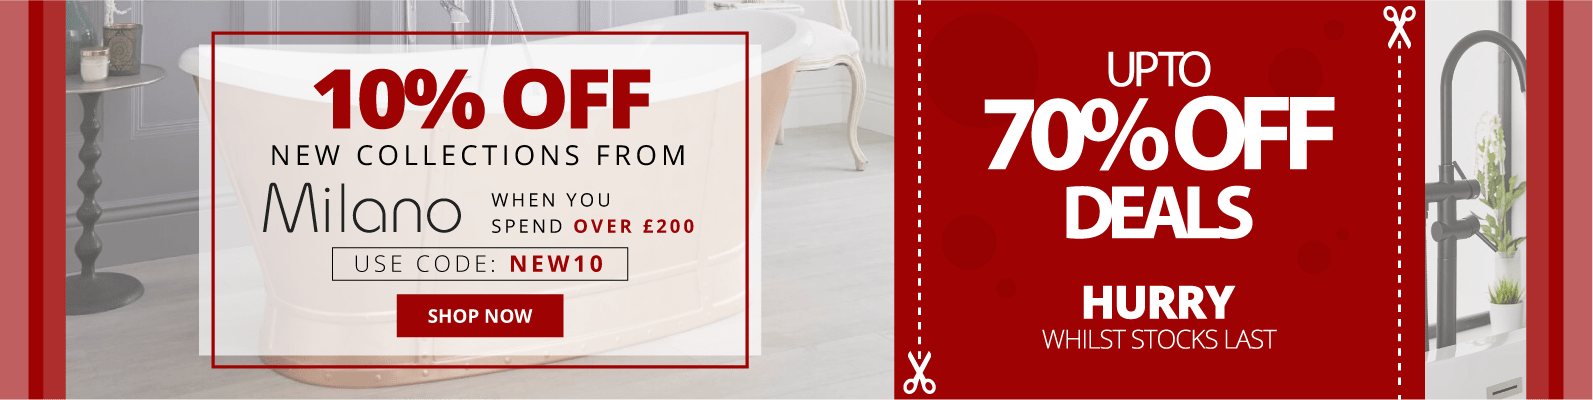 10% Off New Collections from Milano When You Spend Over £200 Use Code: NEW10 Shop Now Up To 70% Off Deals Hurry Whilst Stocks Last!